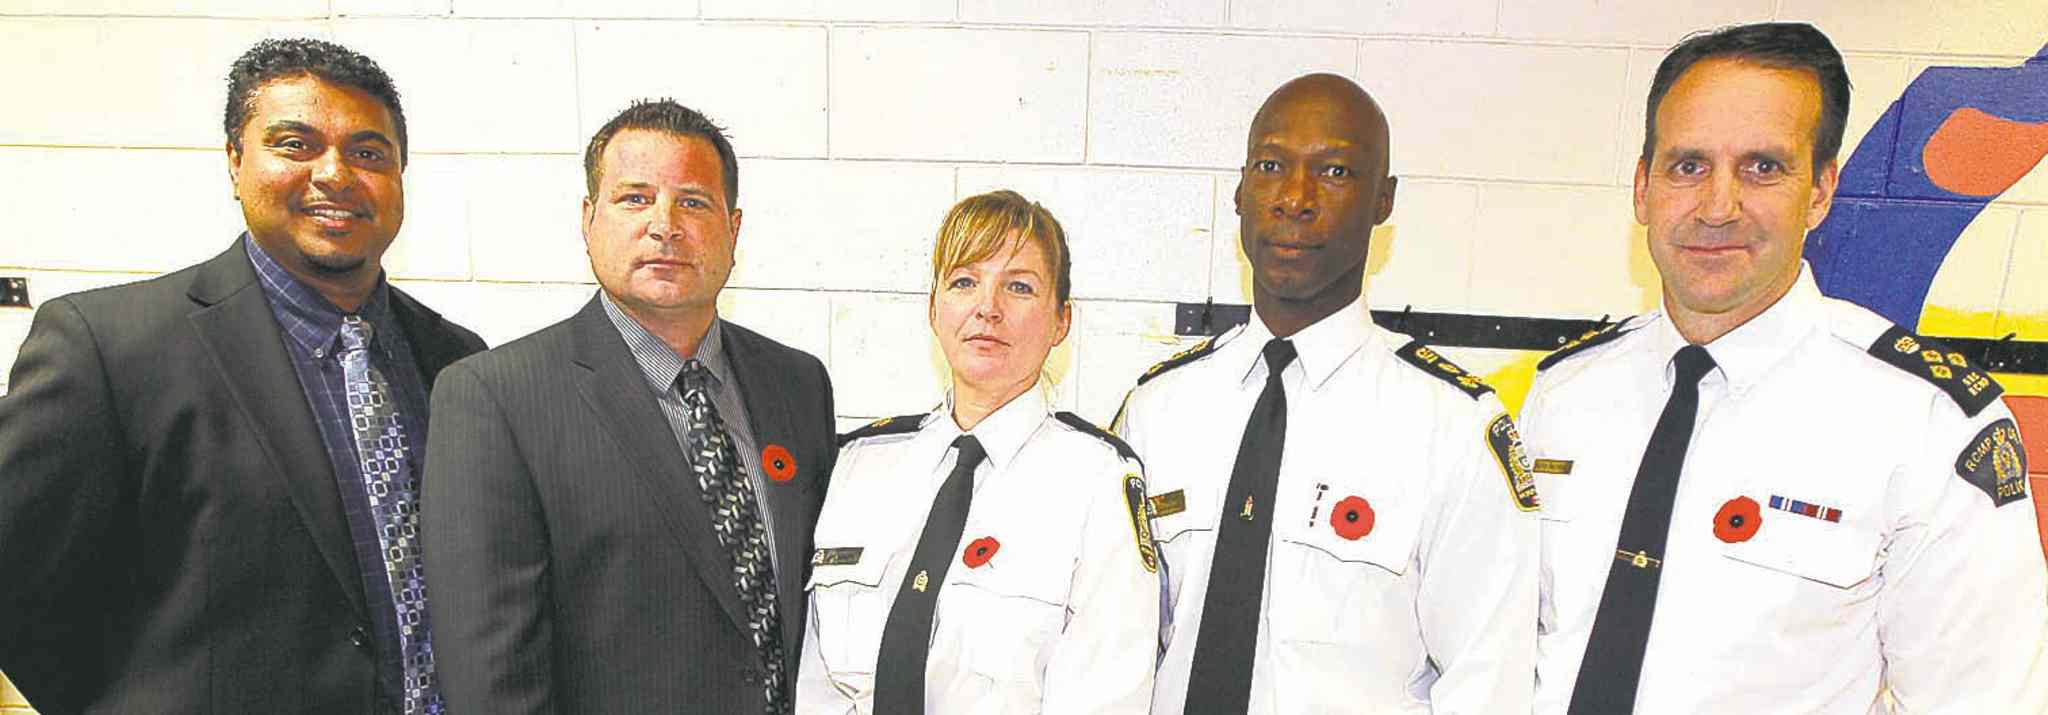 From left, Winnipeg Police Service Det.-Sgt. Darryl Ramkissoon, Sgt. Gene Bowers, Insp. Liz Pilcher, Chief Devon Clunis and RCMP D Division Assistant Commissioner Kevin Brosseau announce the new anti-prostitution approach Friday at the William Whyte Residents' Association office at 295 Pritchard Ave.